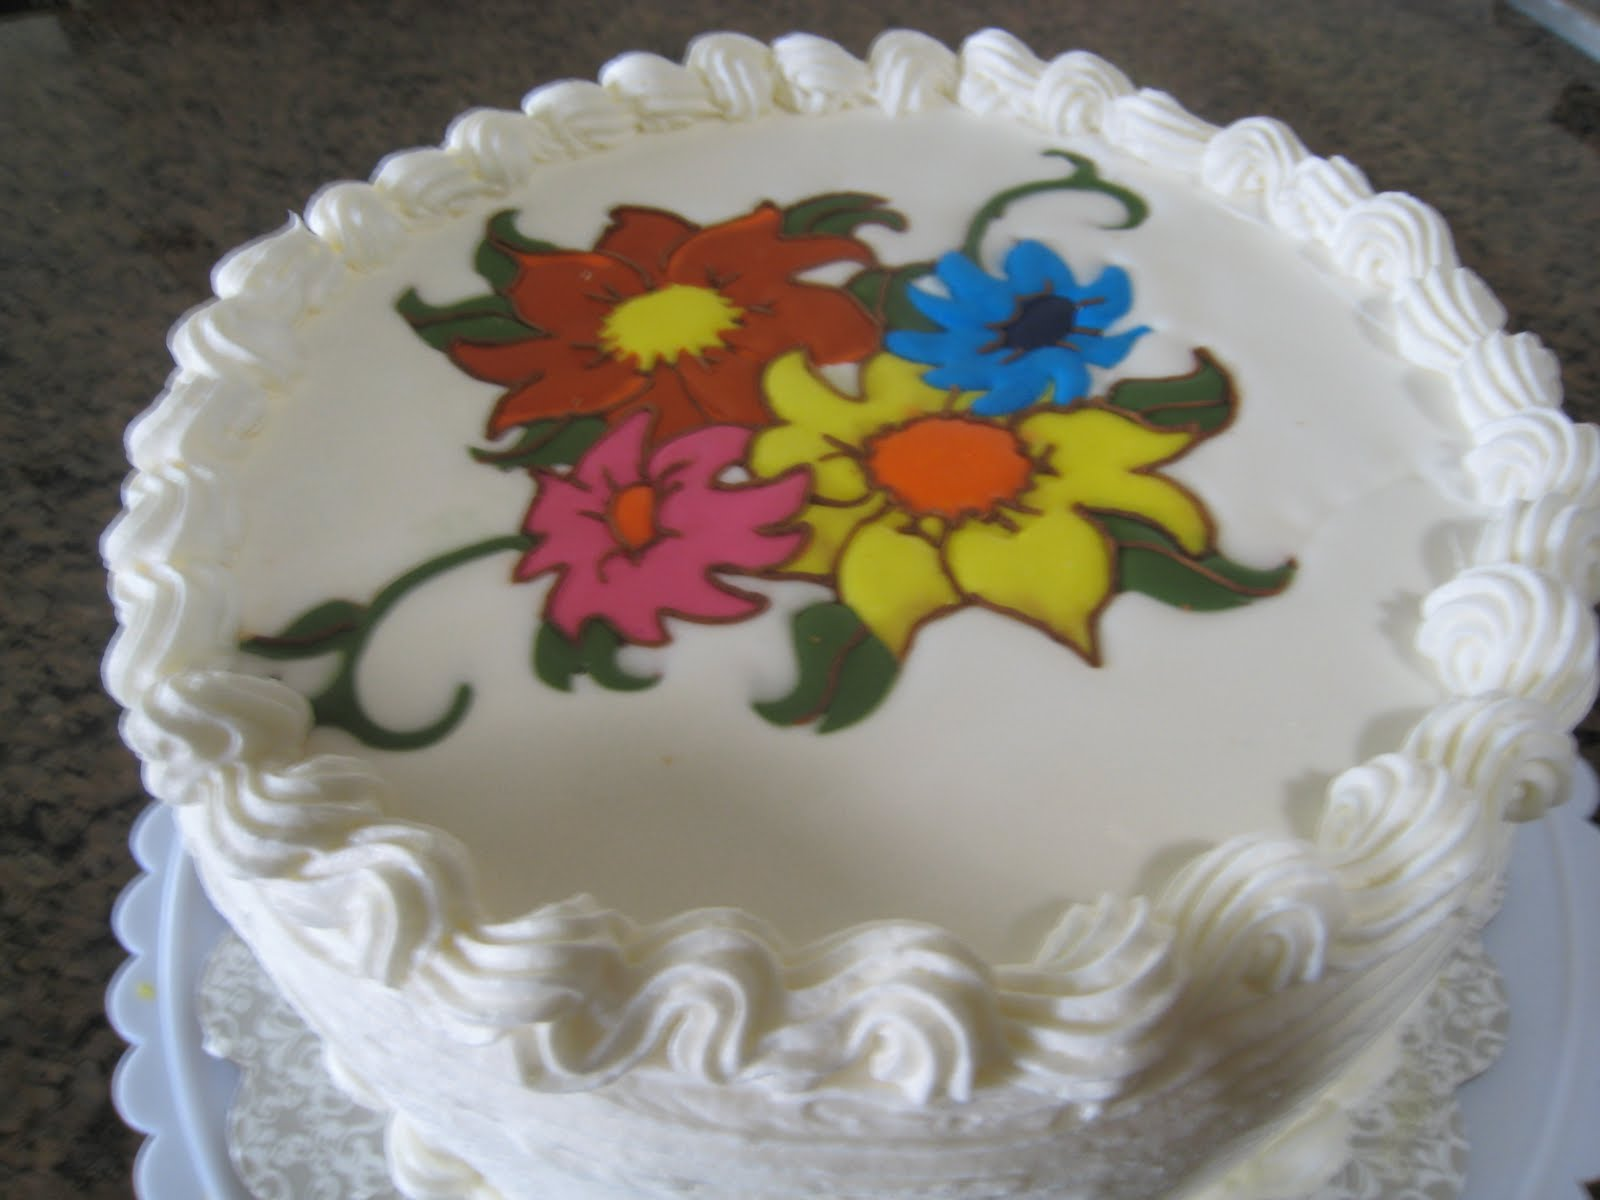 Cake And Sugar Art Nz : Judy Cakes Sugar Arts: Pineapple flavored cake with Color ...